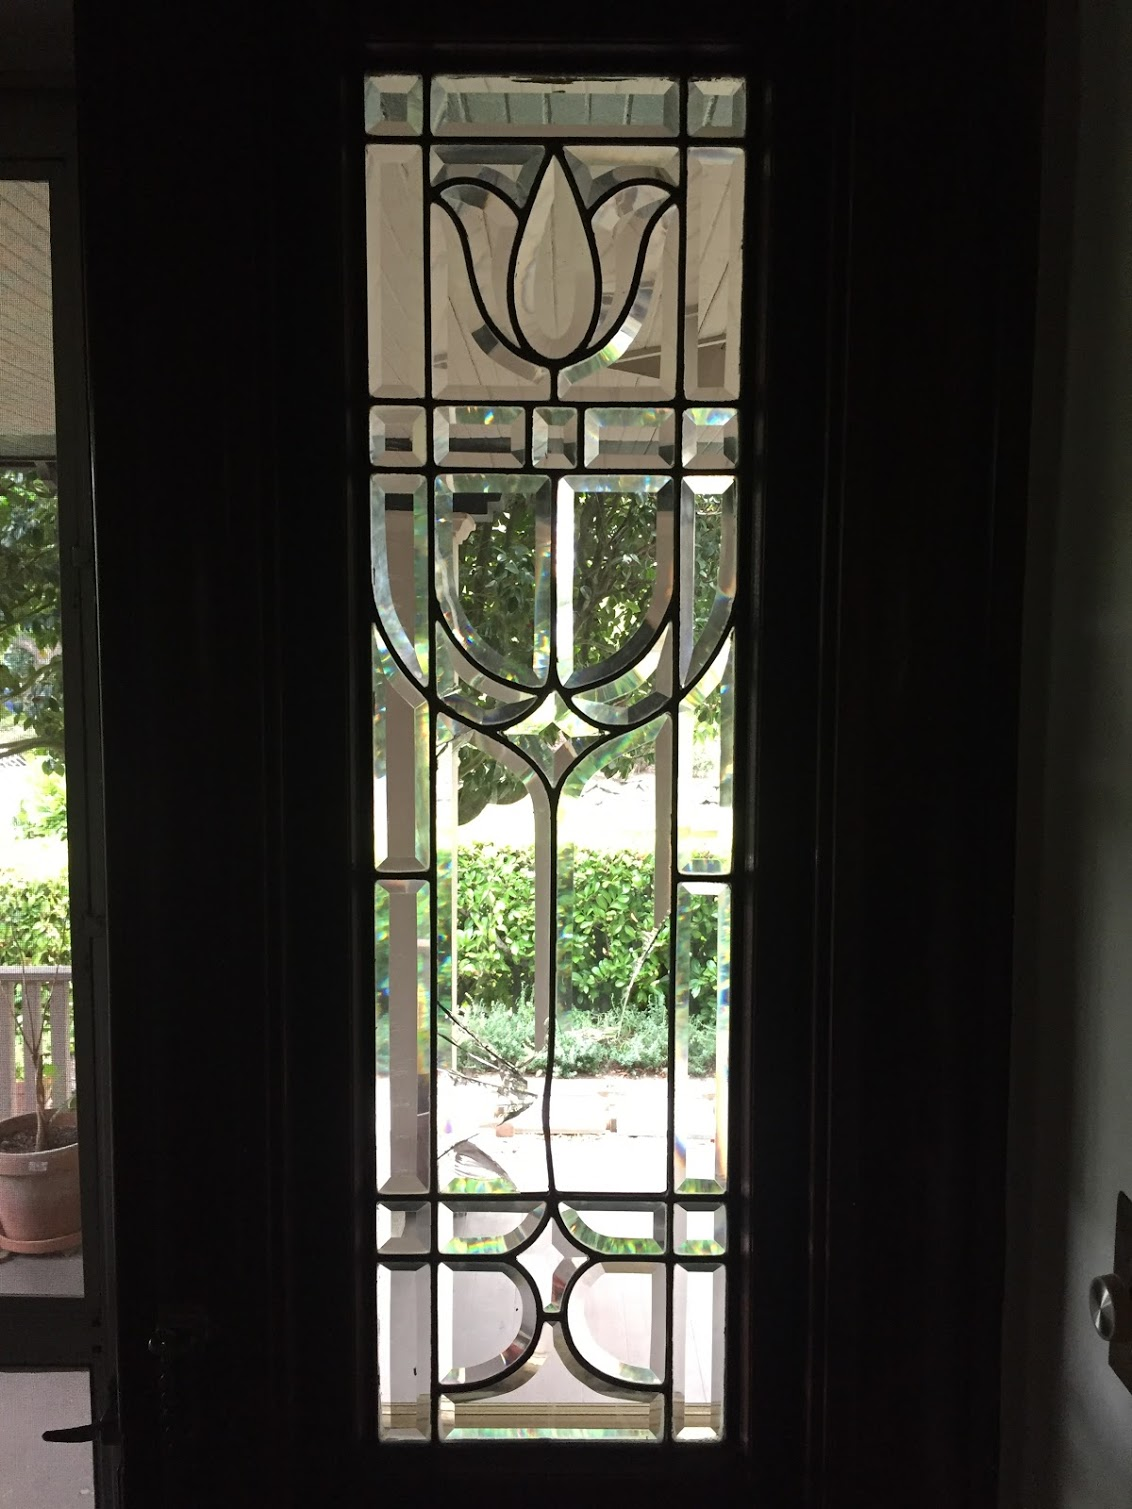 (Fortunately the damage to this beveled glass sidelight window was limited to the large middle portions, and we were able to reproduce them and repair the window)